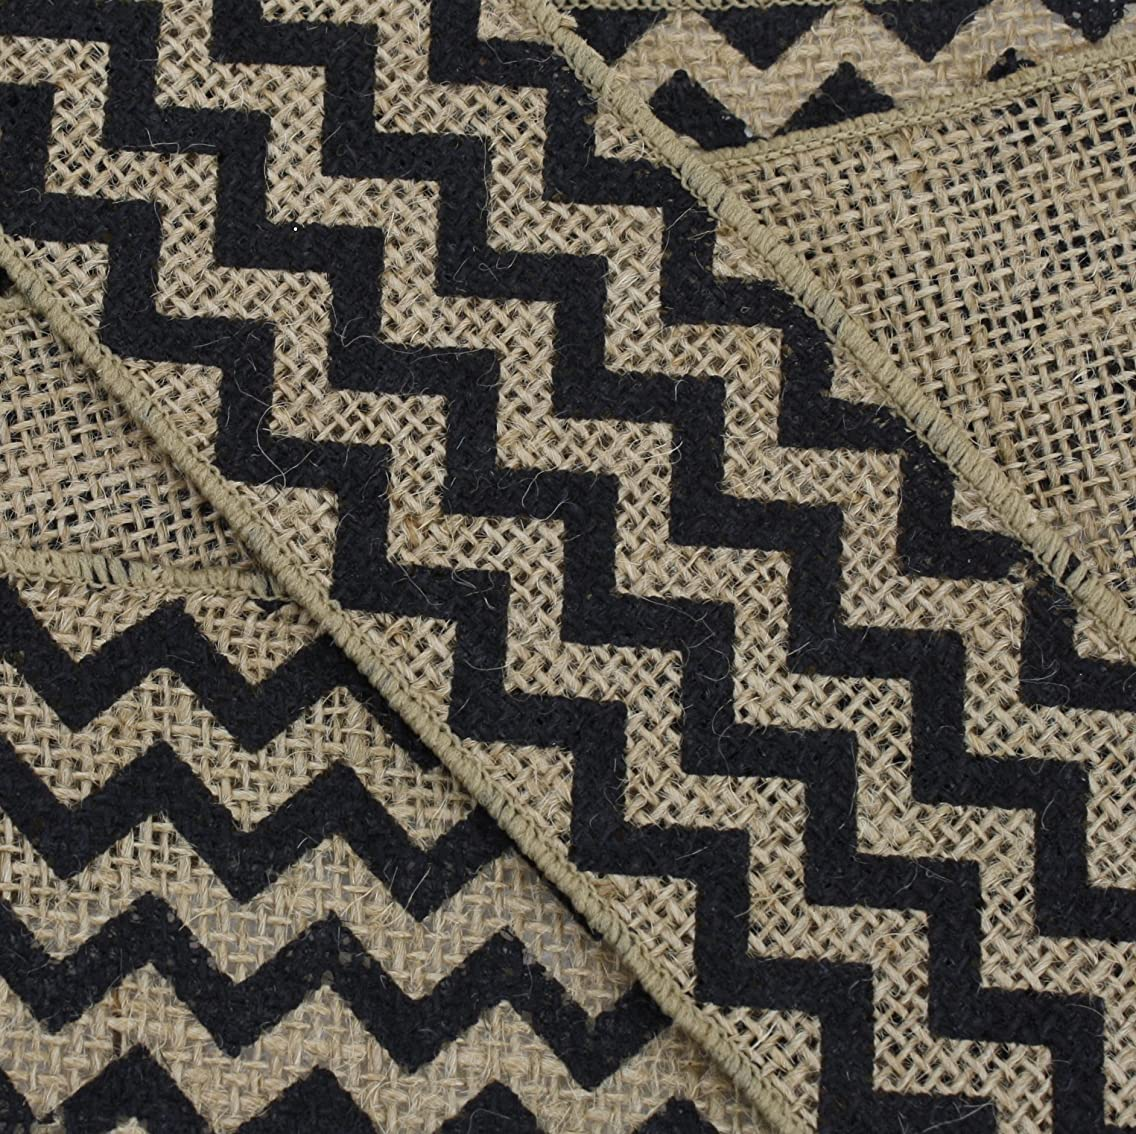 Kel-Toy Wired Chevron Burlap Ribbon, 2.5-Inch by 10-Yard, Natural and Black